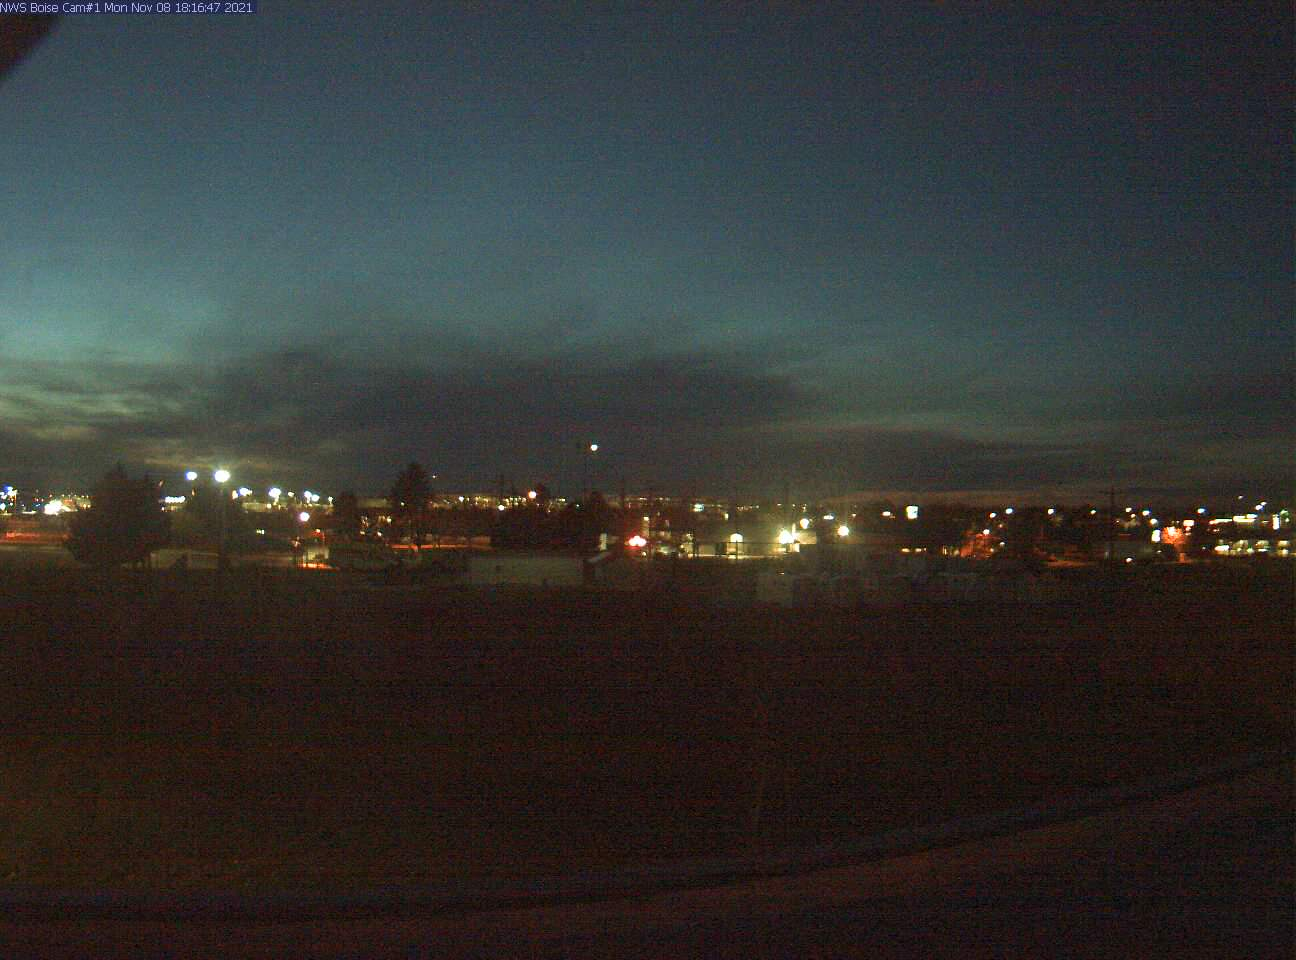 Picture of Boise web cam looking west